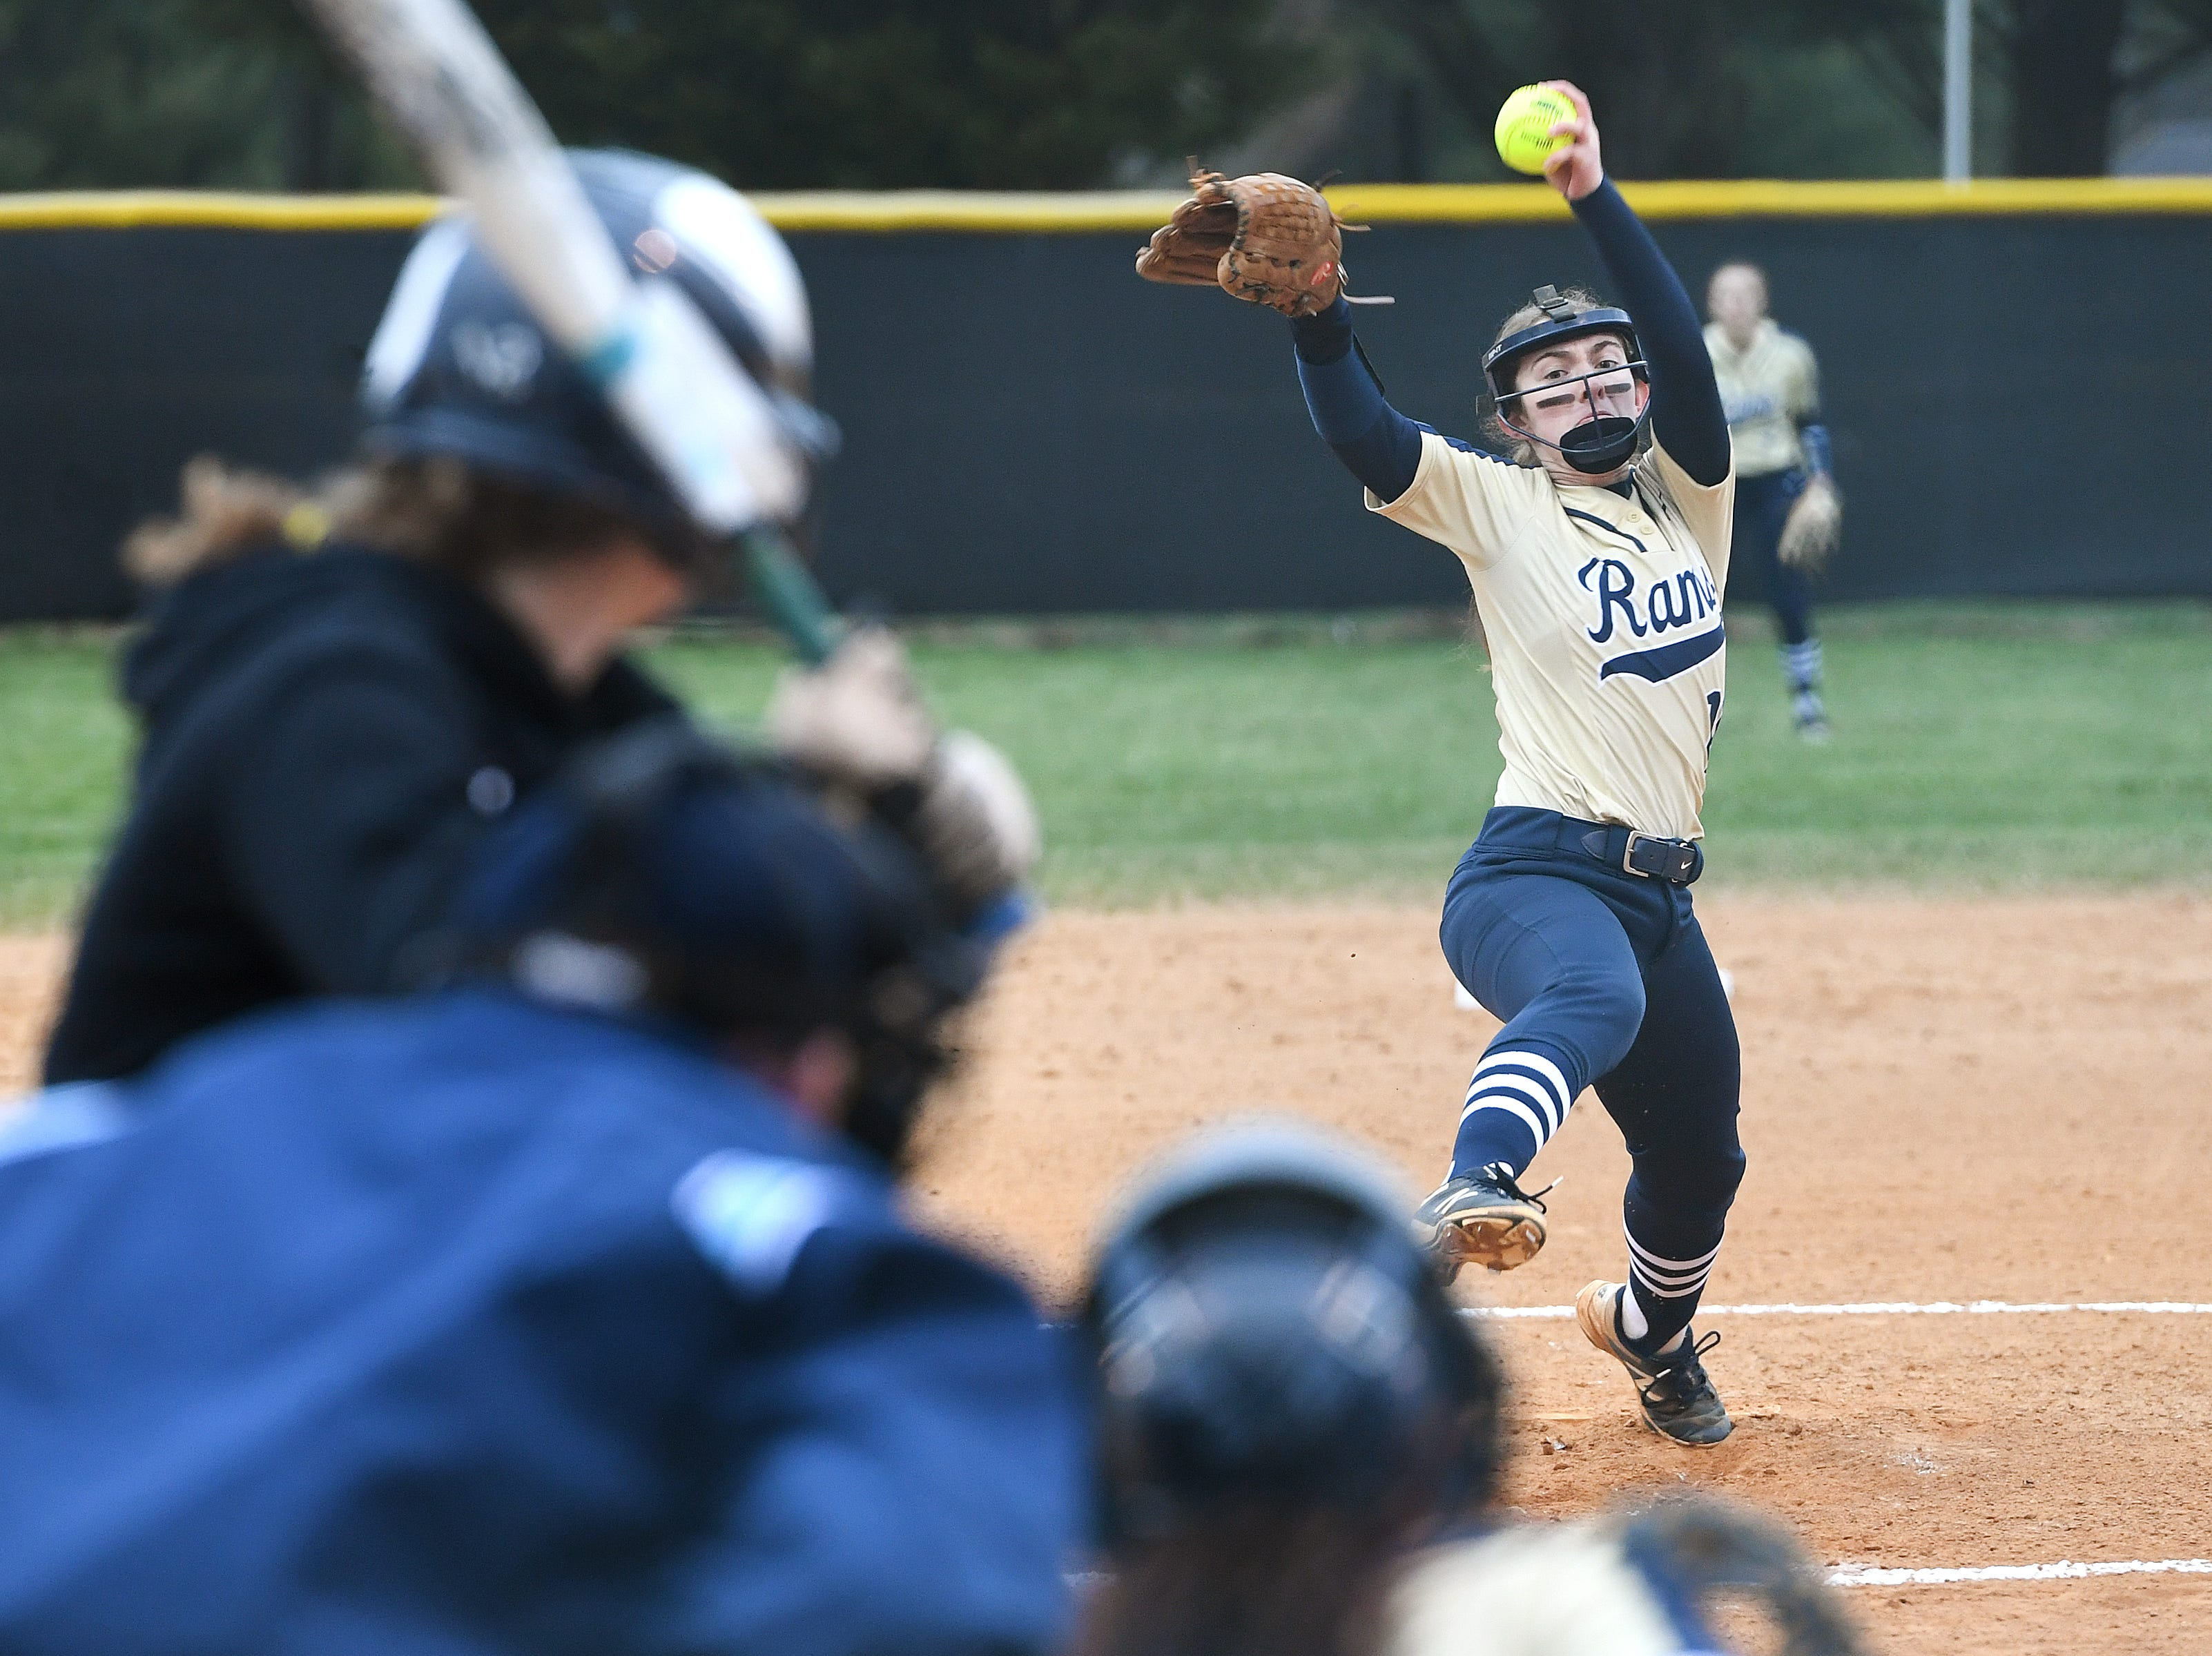 North Buncombe defeated Roberson 3-1 in their game at North Buncombe High School on March 7, 2019.